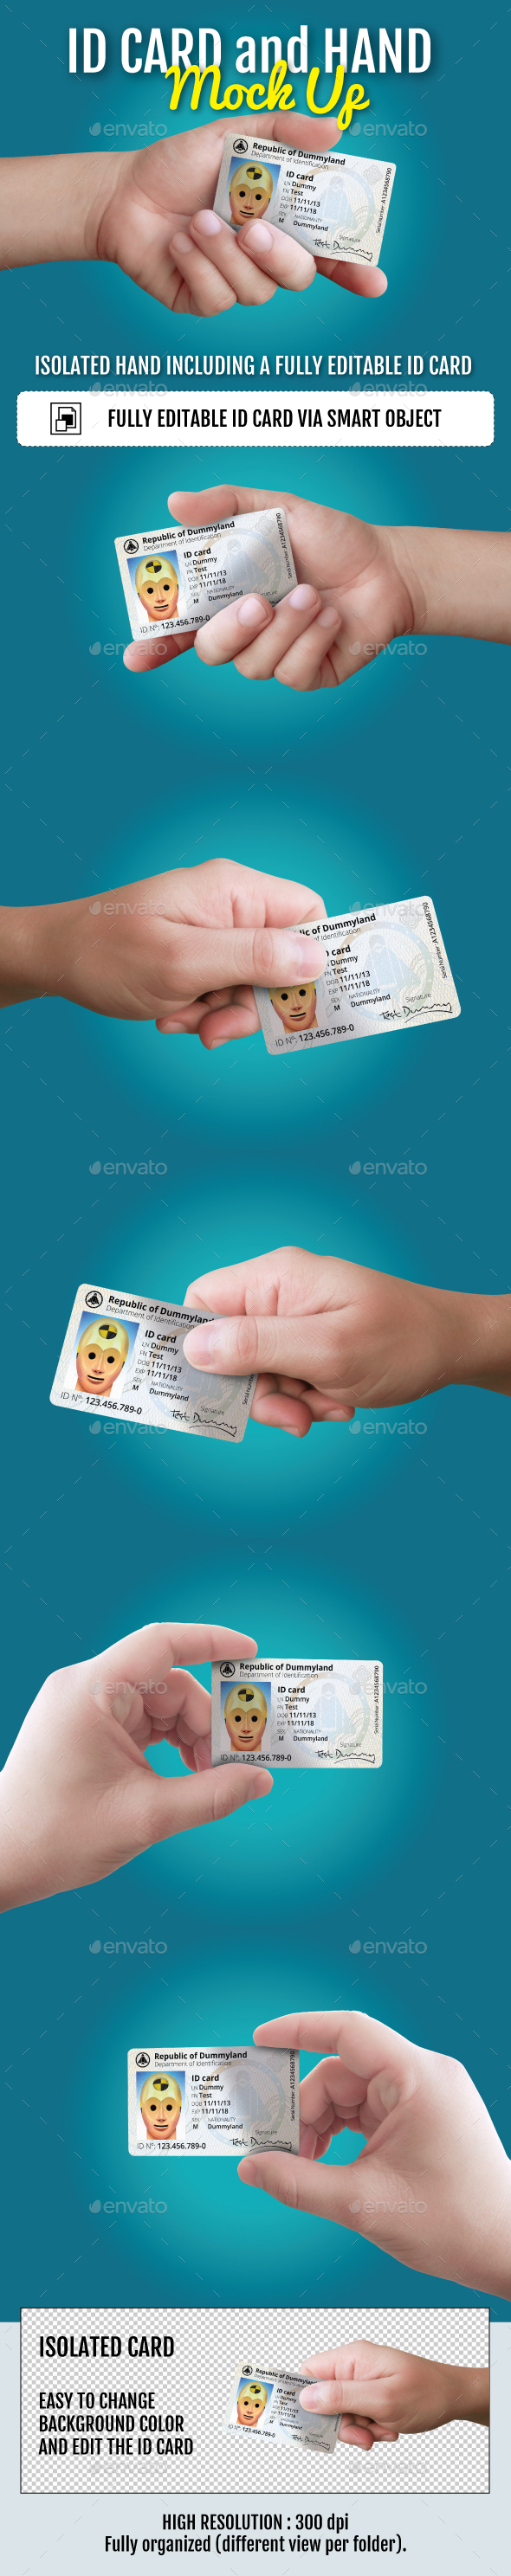 ID Card and Hand Mockup - Miscellaneous Print